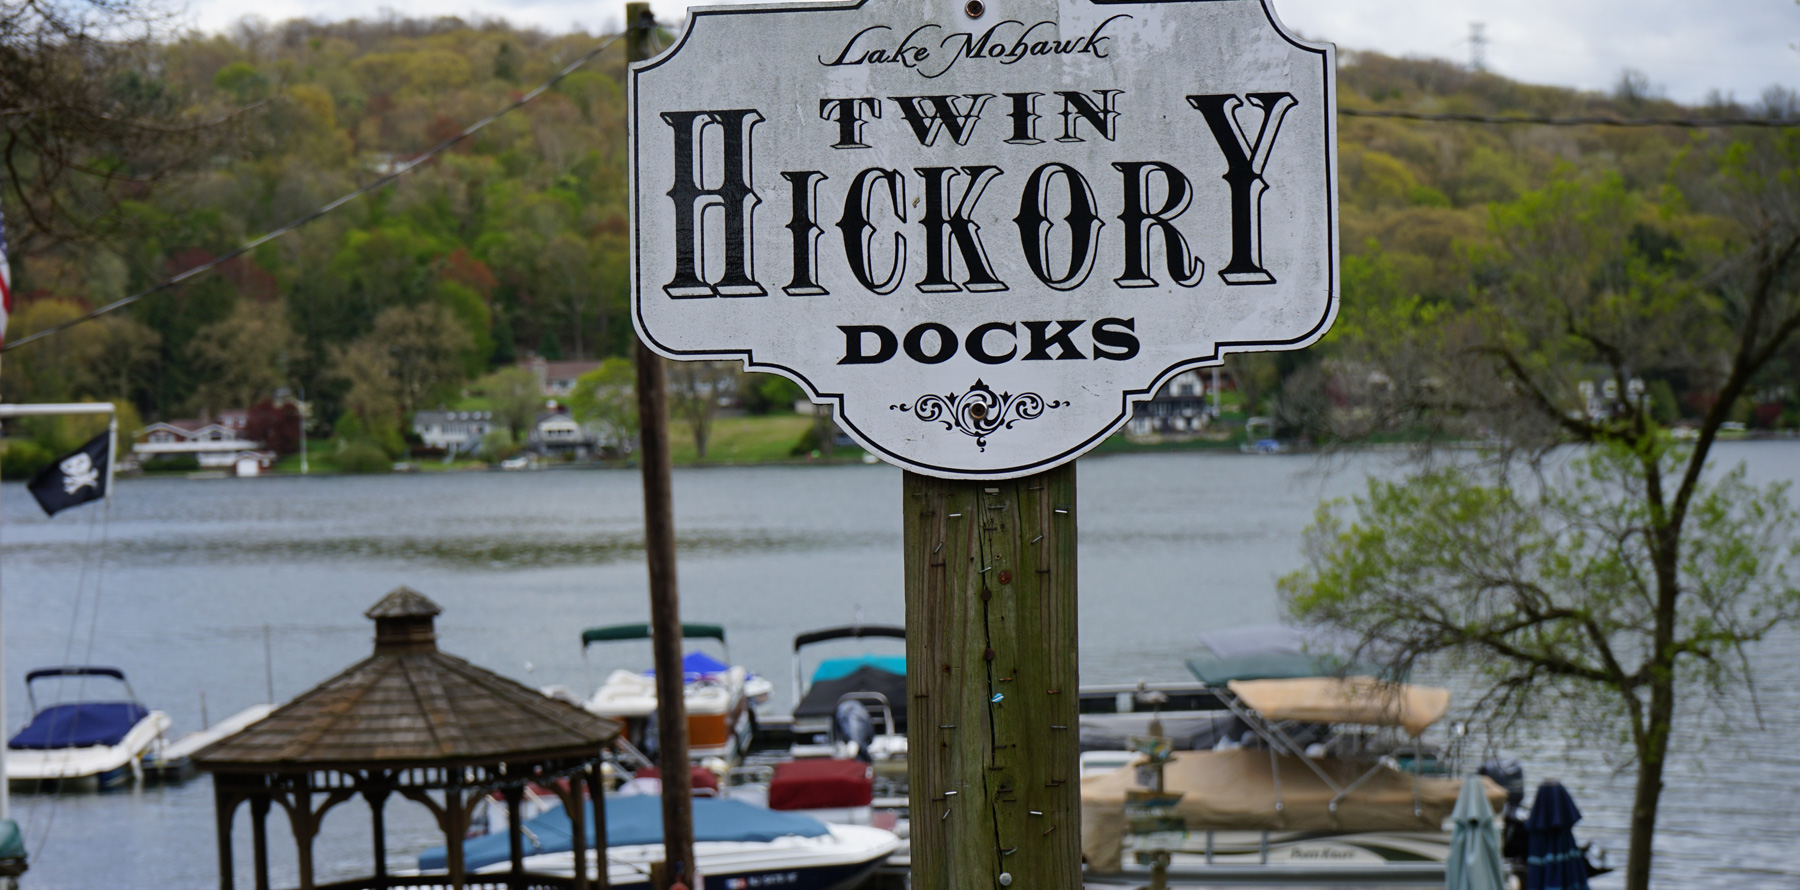 Twin Hickory Docks at Lake Mohawk NJ